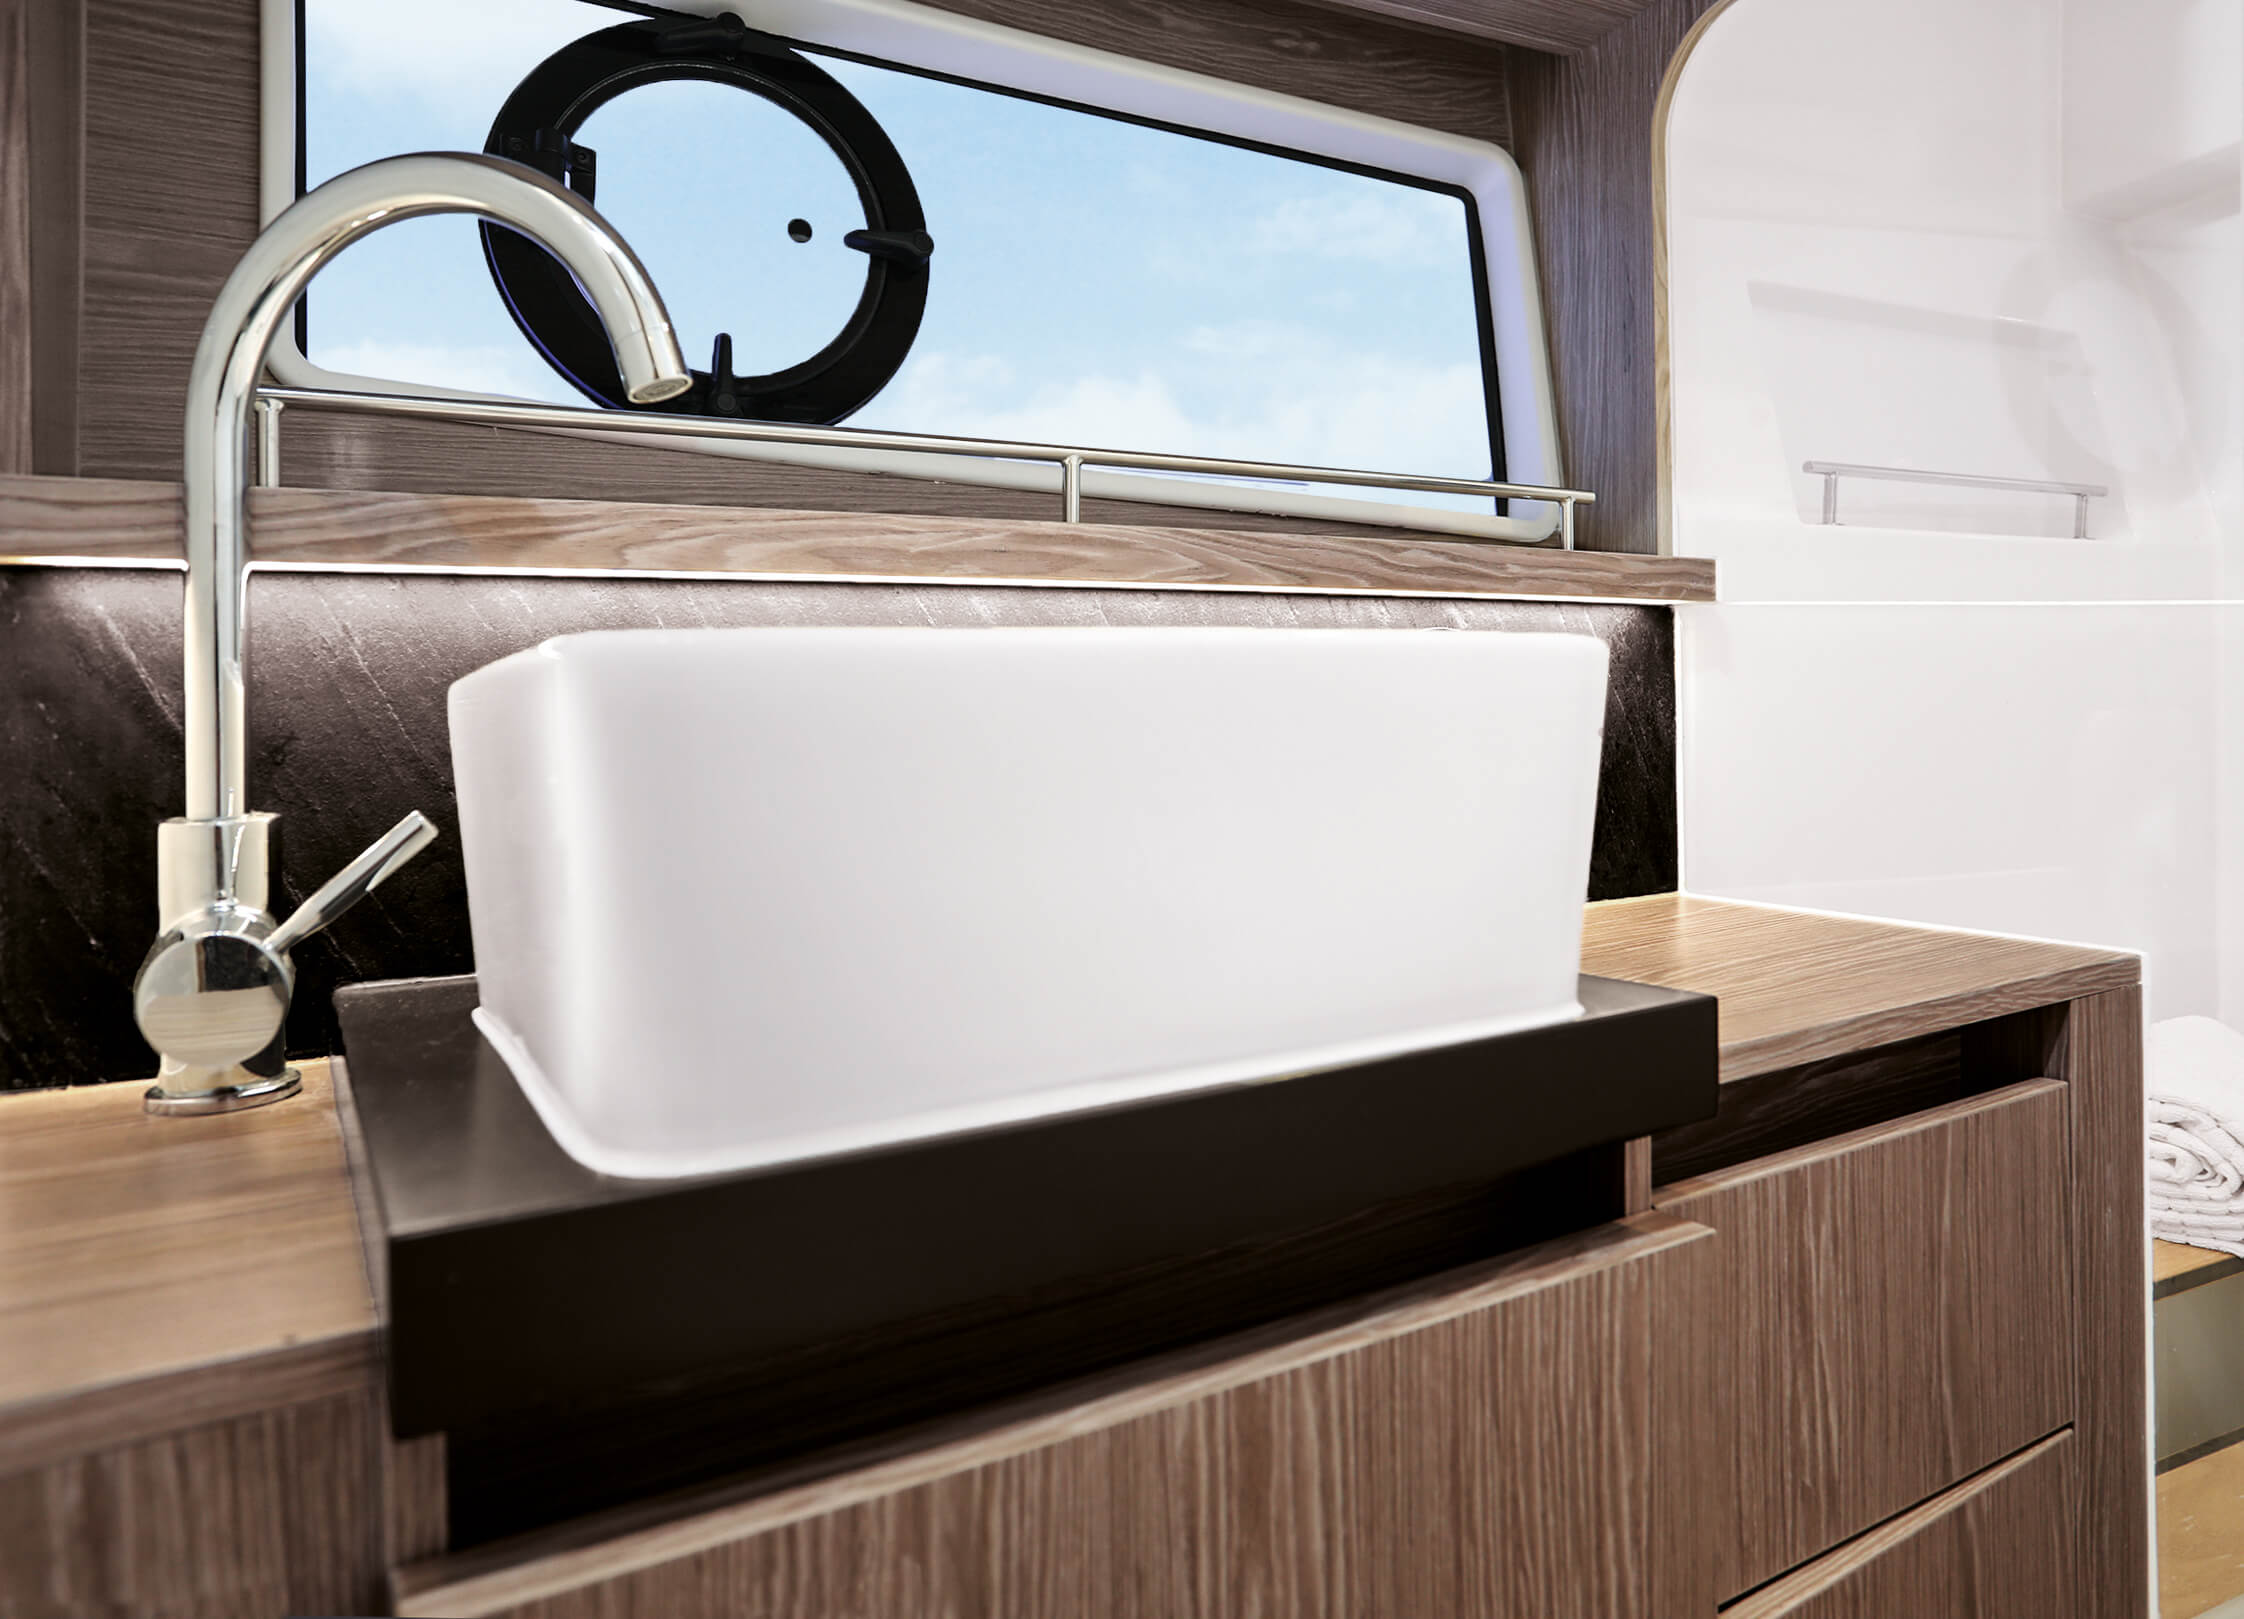 Sealine F430 Iç mekan görünümü | Fully equipped head with separate shower stall with handheld shower, and comfort seat with wood cover. | Sealine